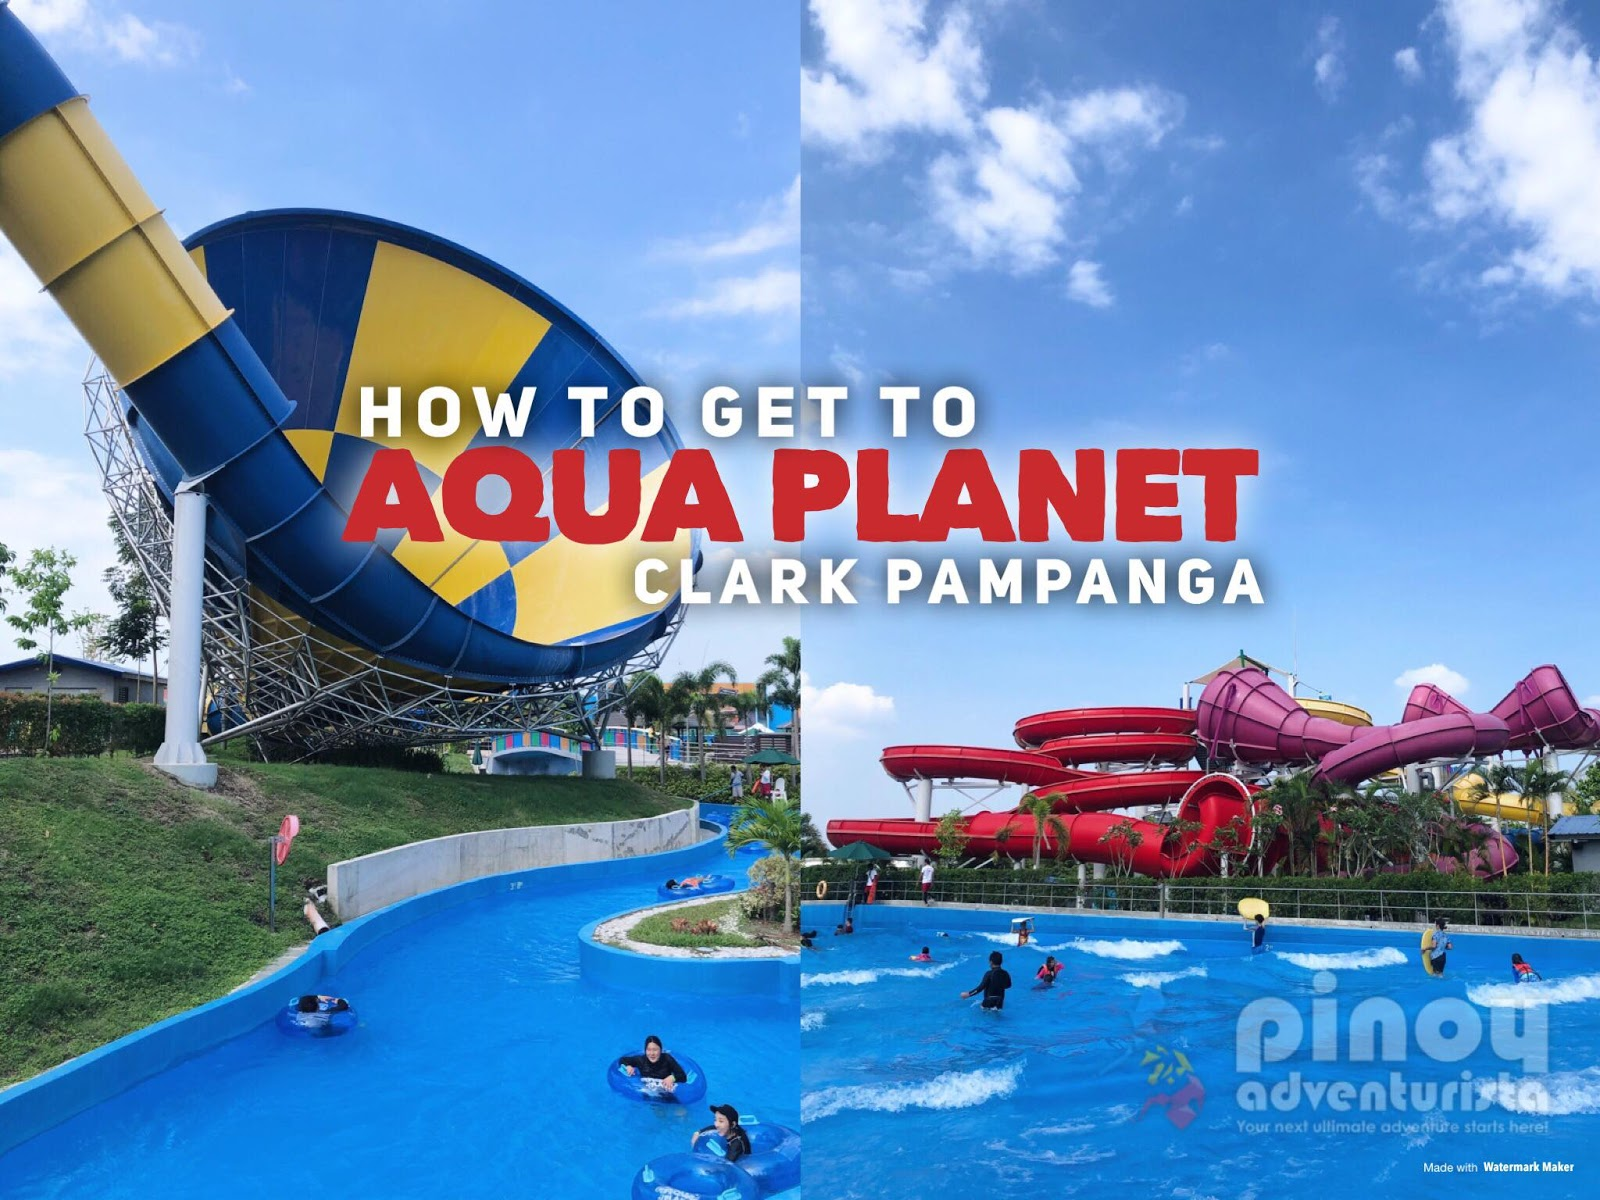 How to Get to AQUA PLANET from MANILA by Commute and Private